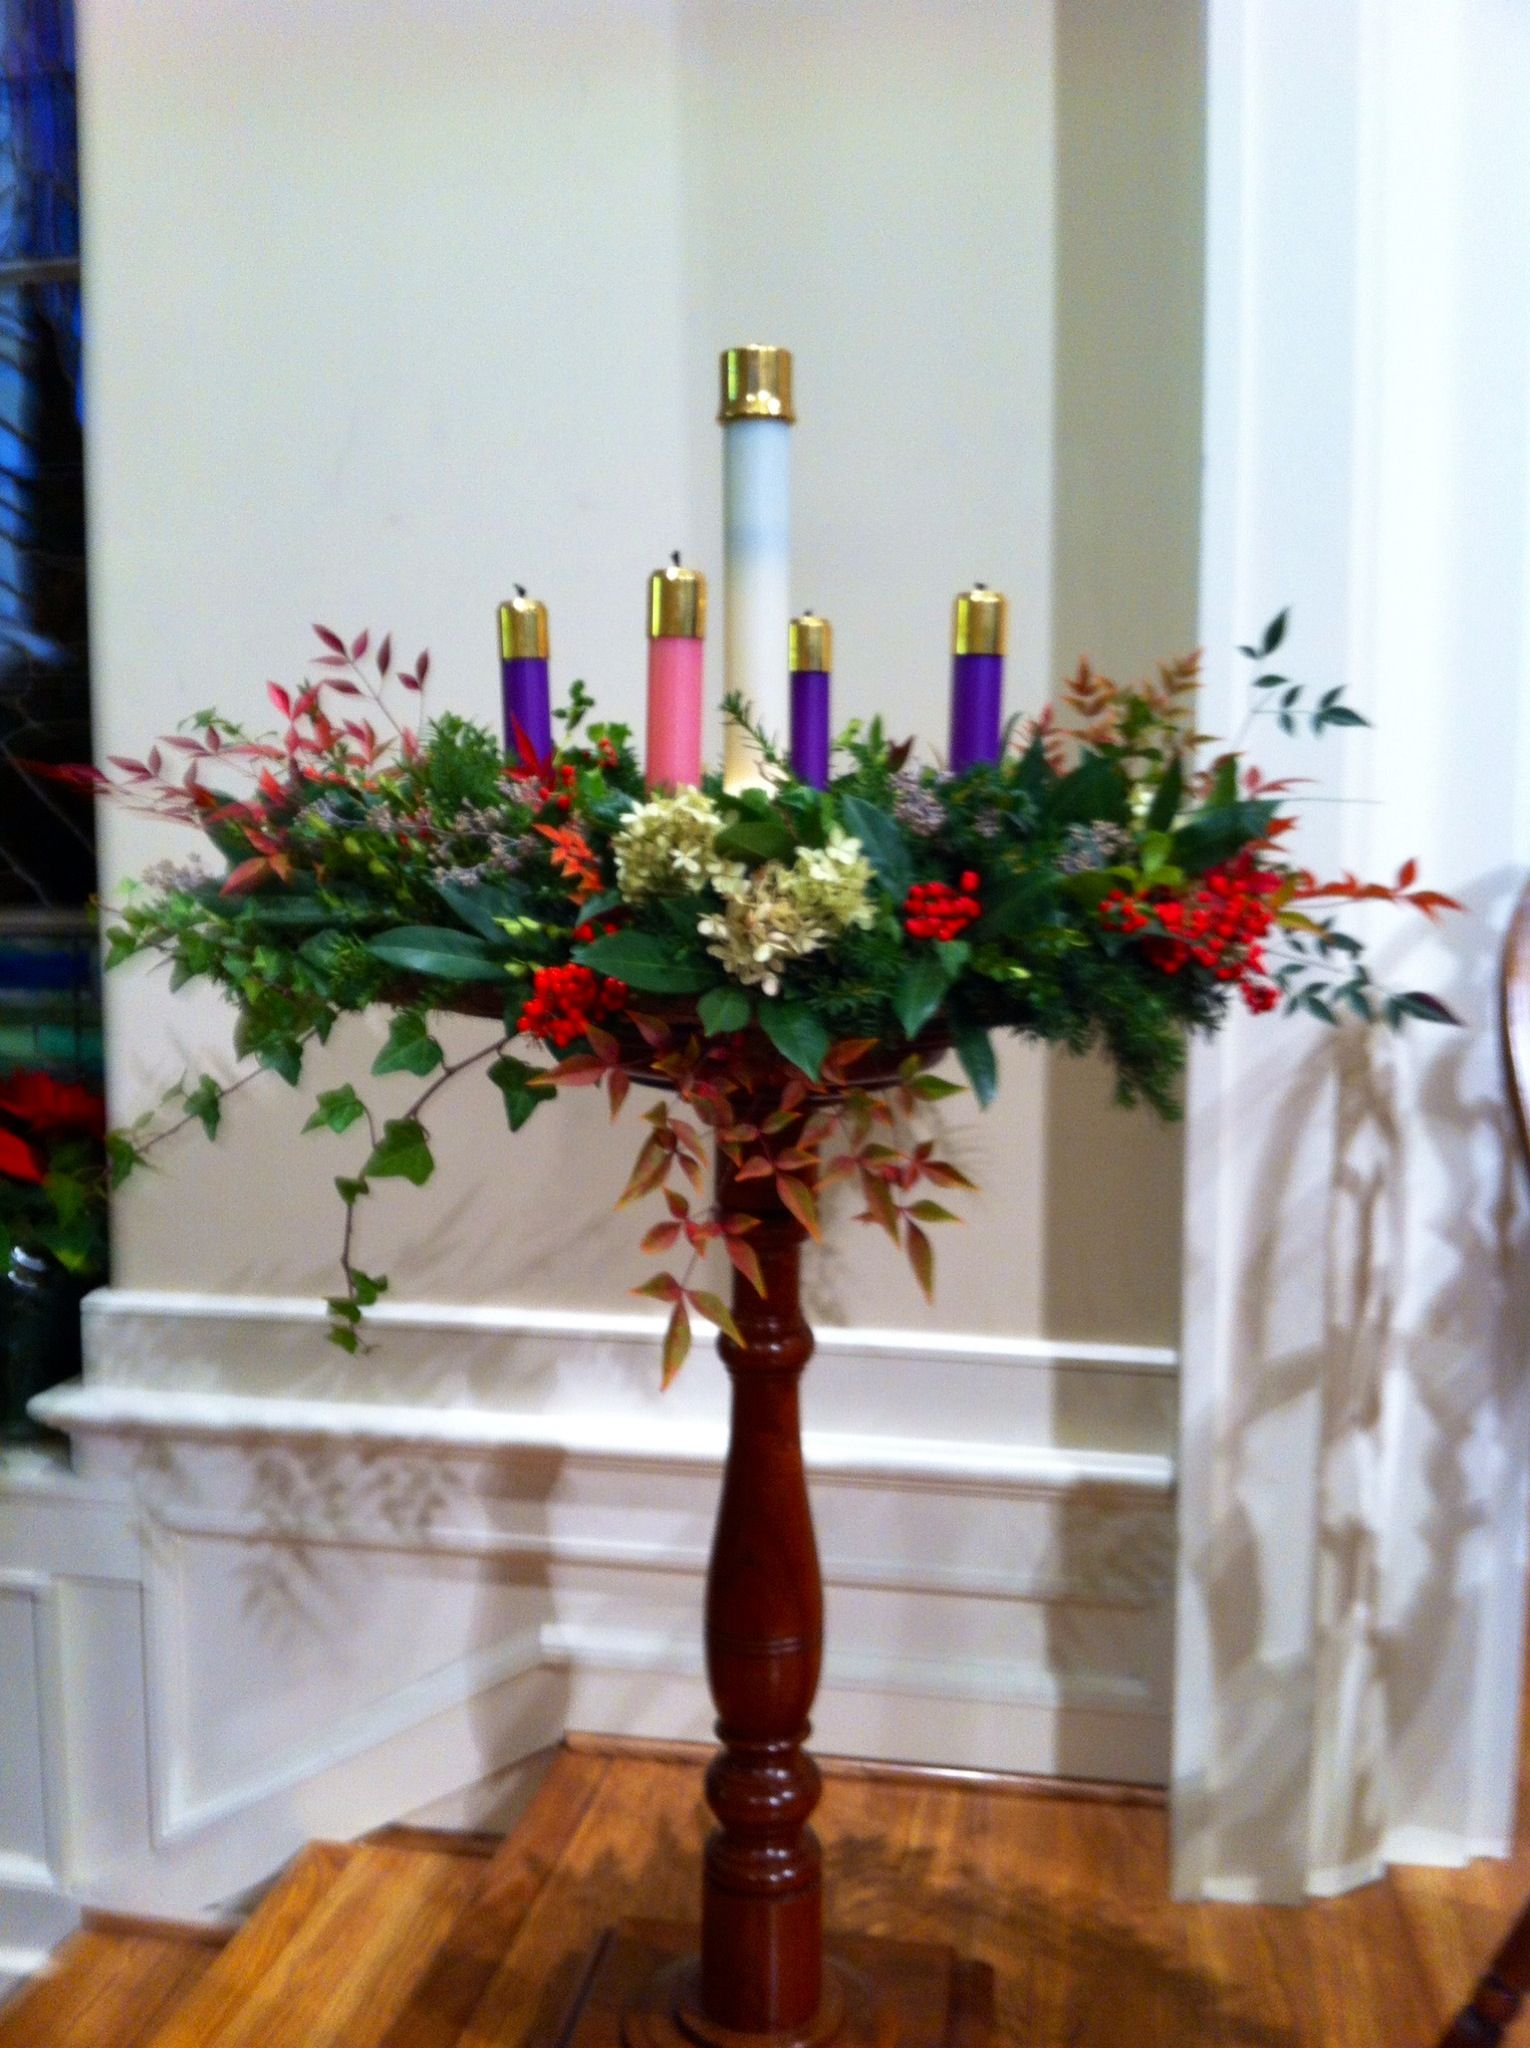 Advent wreath fun stuff pinterest advent church - Pinterest advent ...